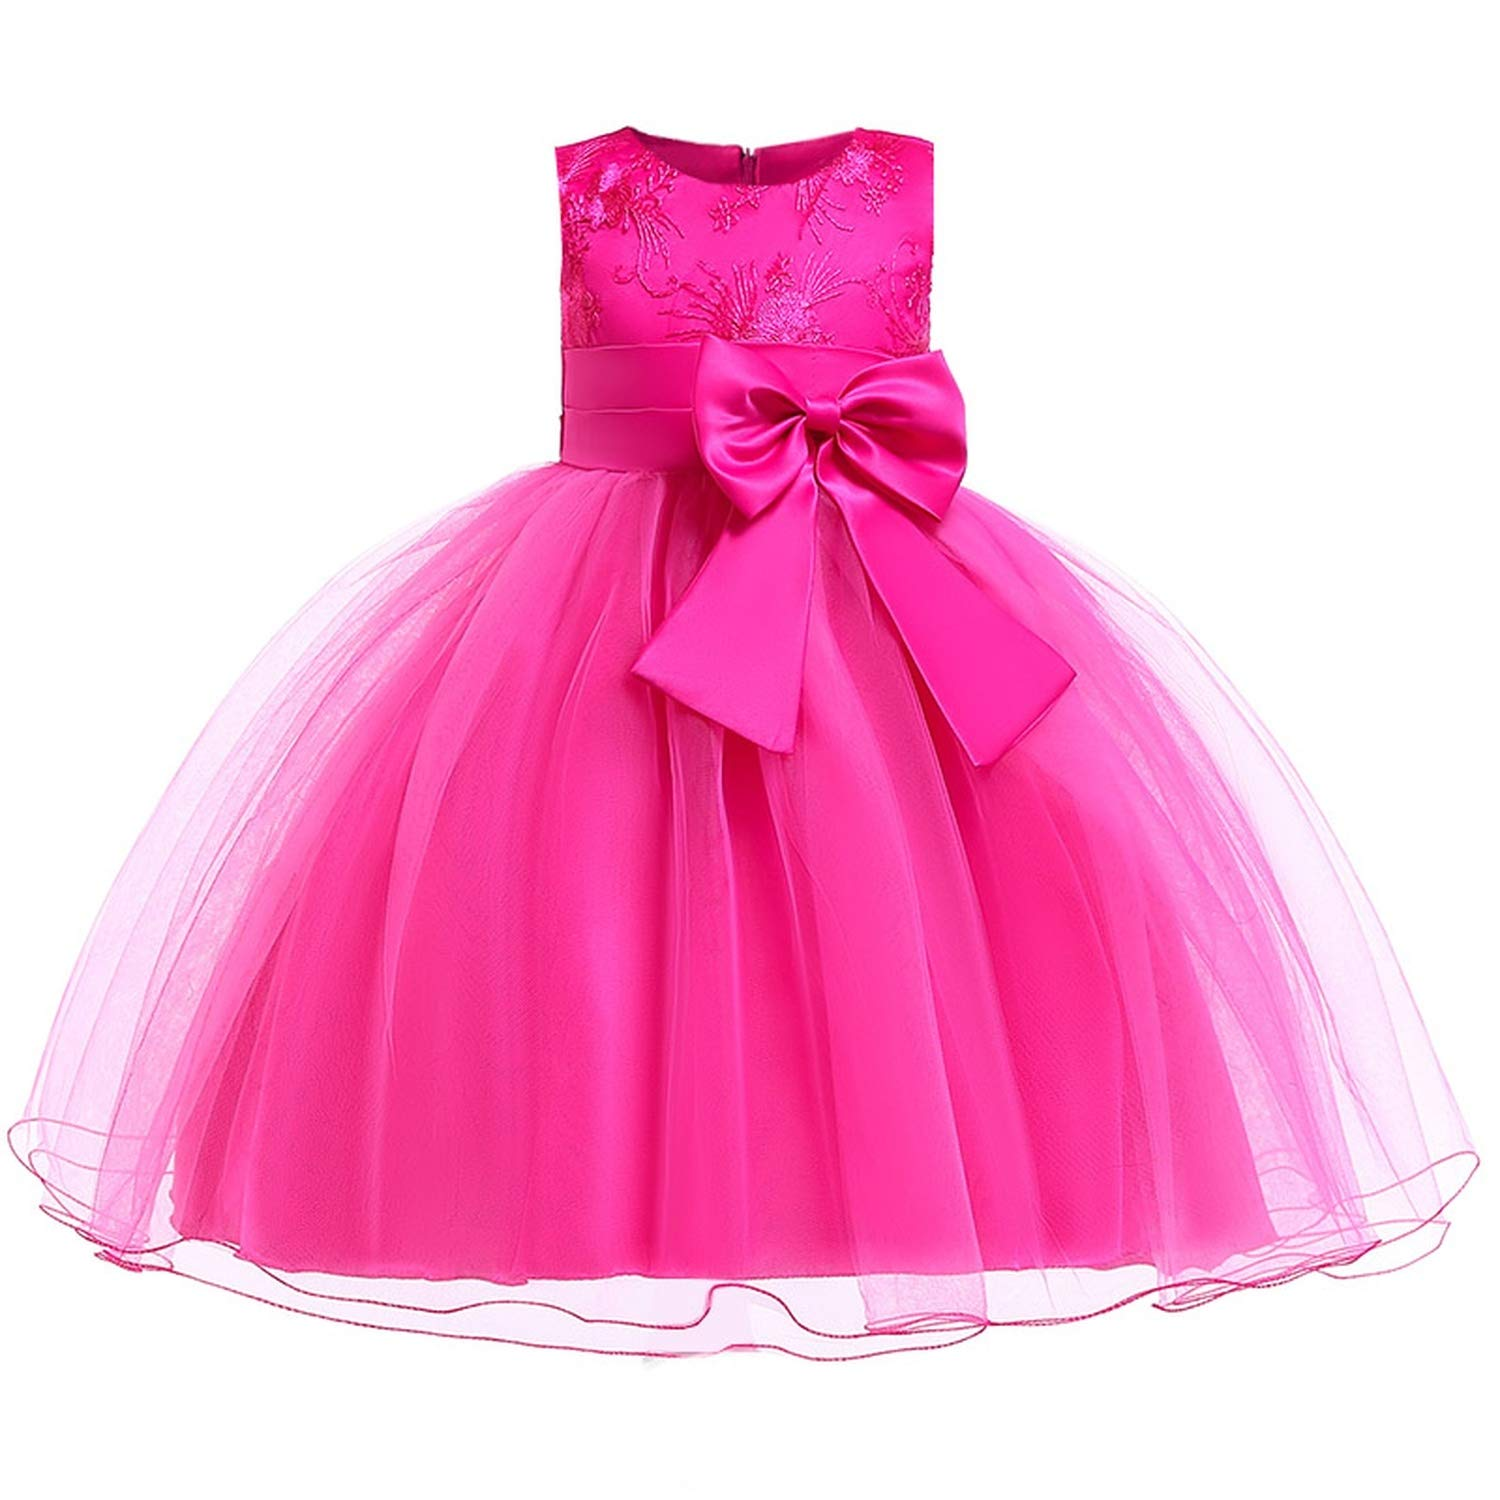 Girls Dress Summer Kids Dresses for Girl Princess Children Baby Tutu 2 3 4 5 6 7 8 9 10 Years,As Picture10,9 by Gooding Day (Image #1)